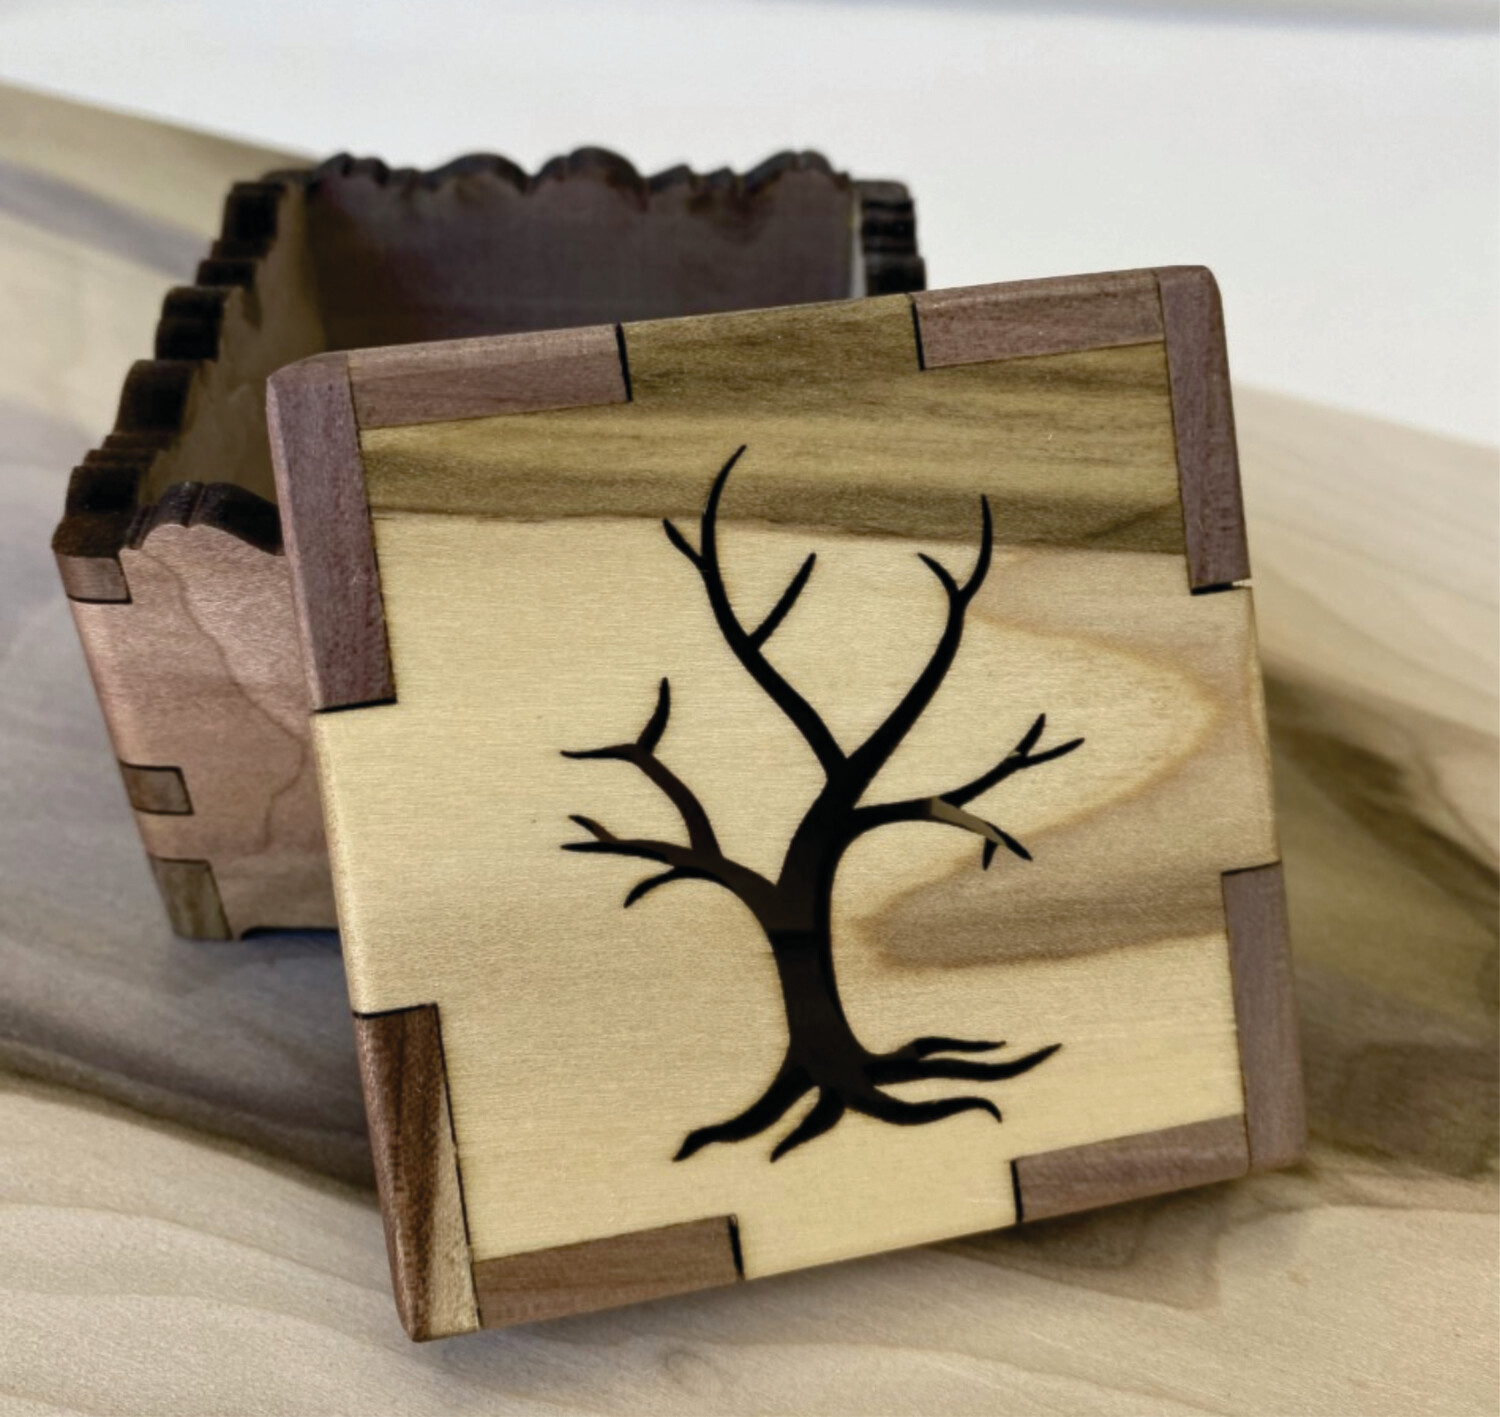 Naked Tree Treasure Box